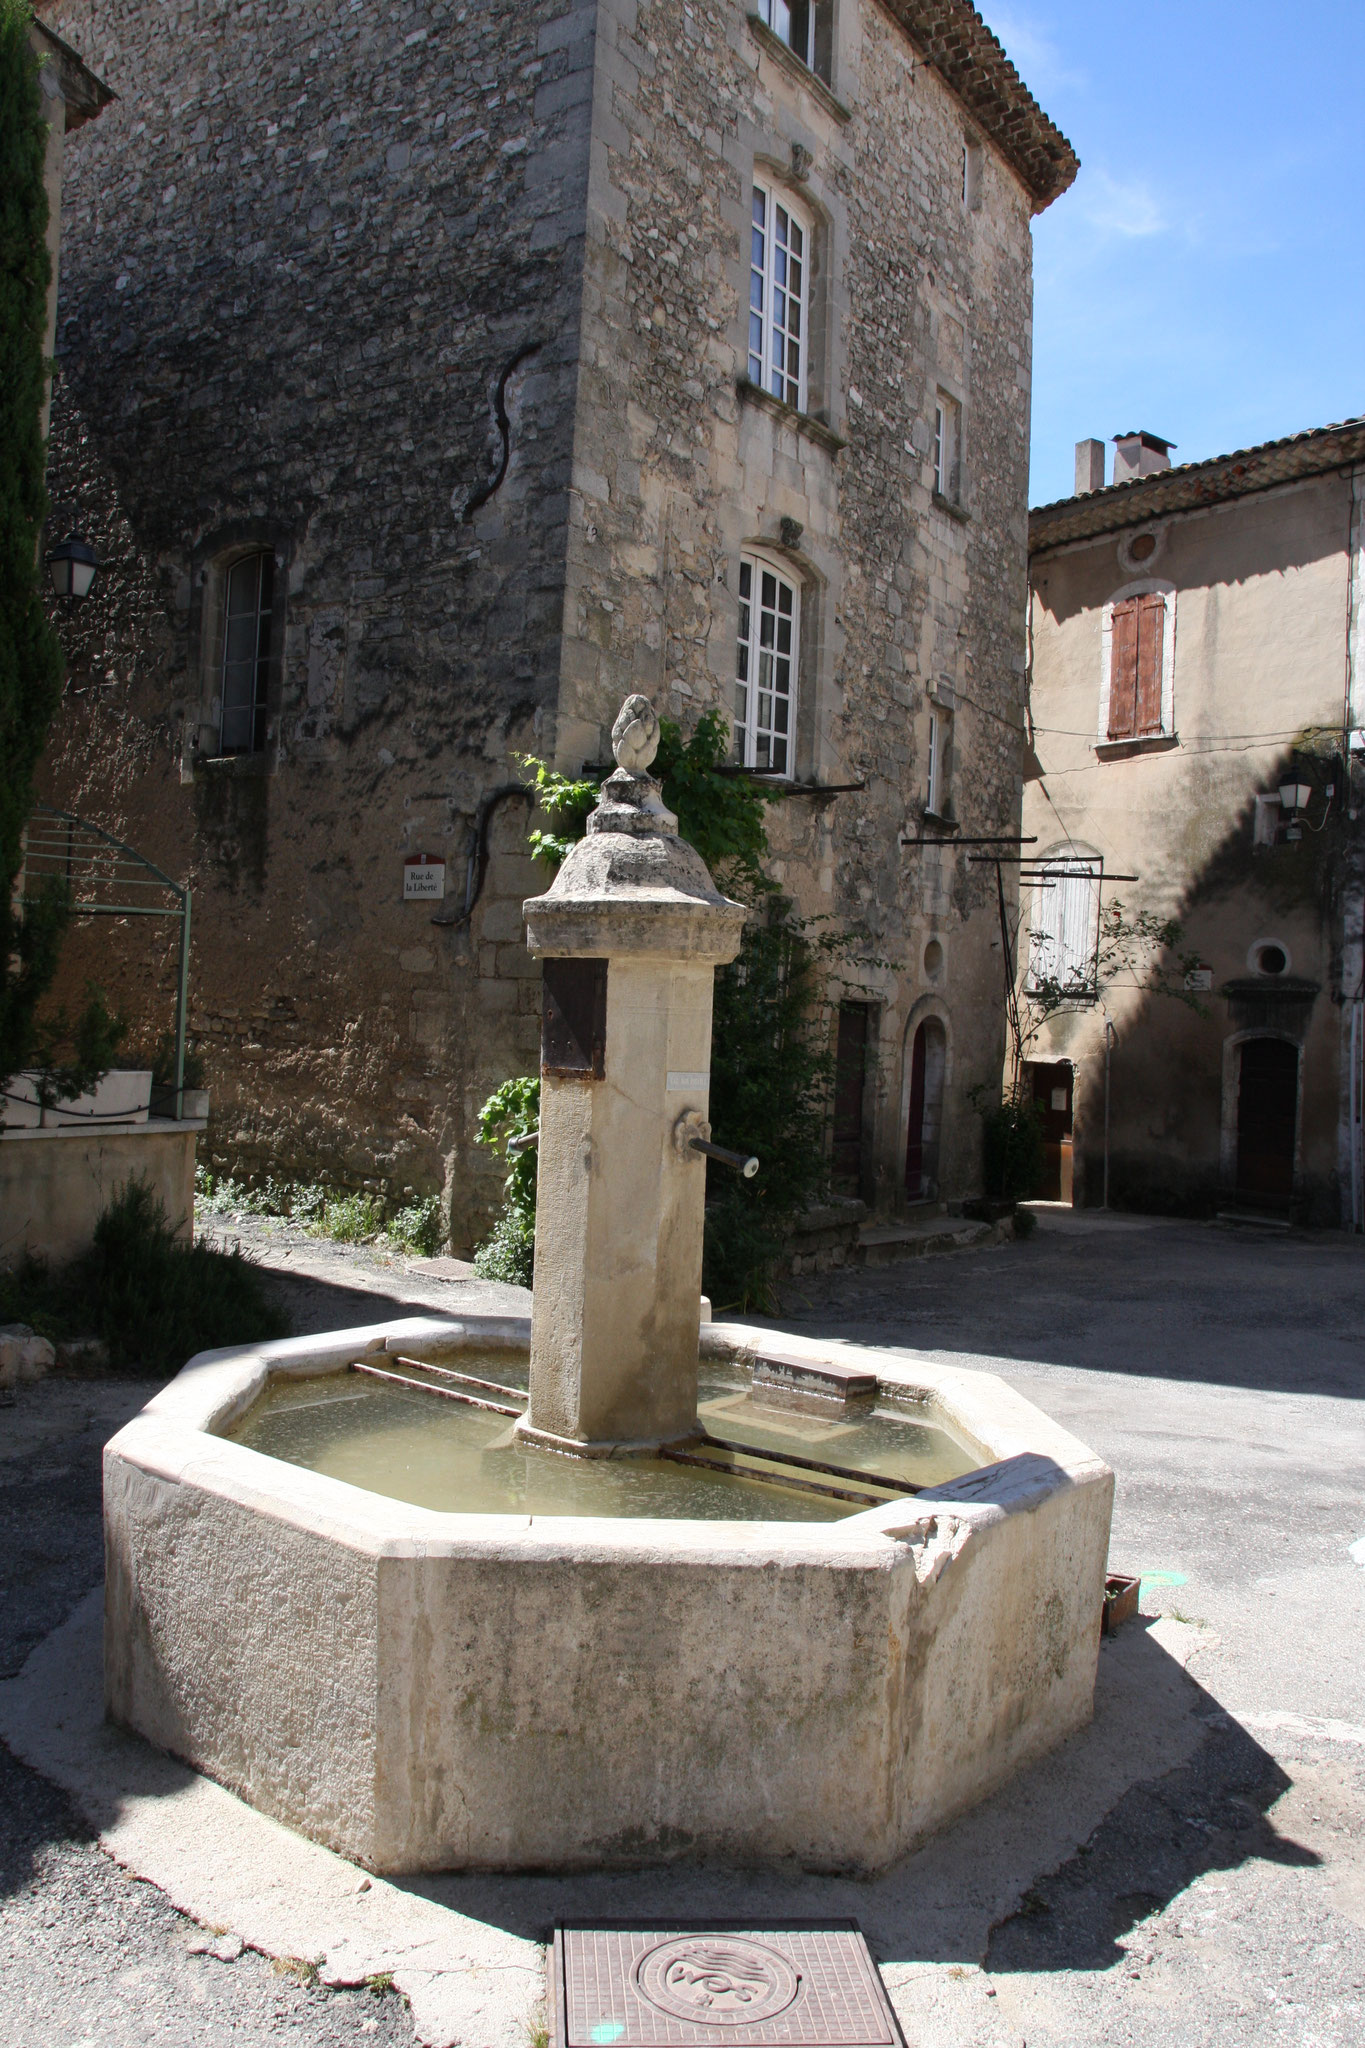 Bild: Fontaine in Céreste